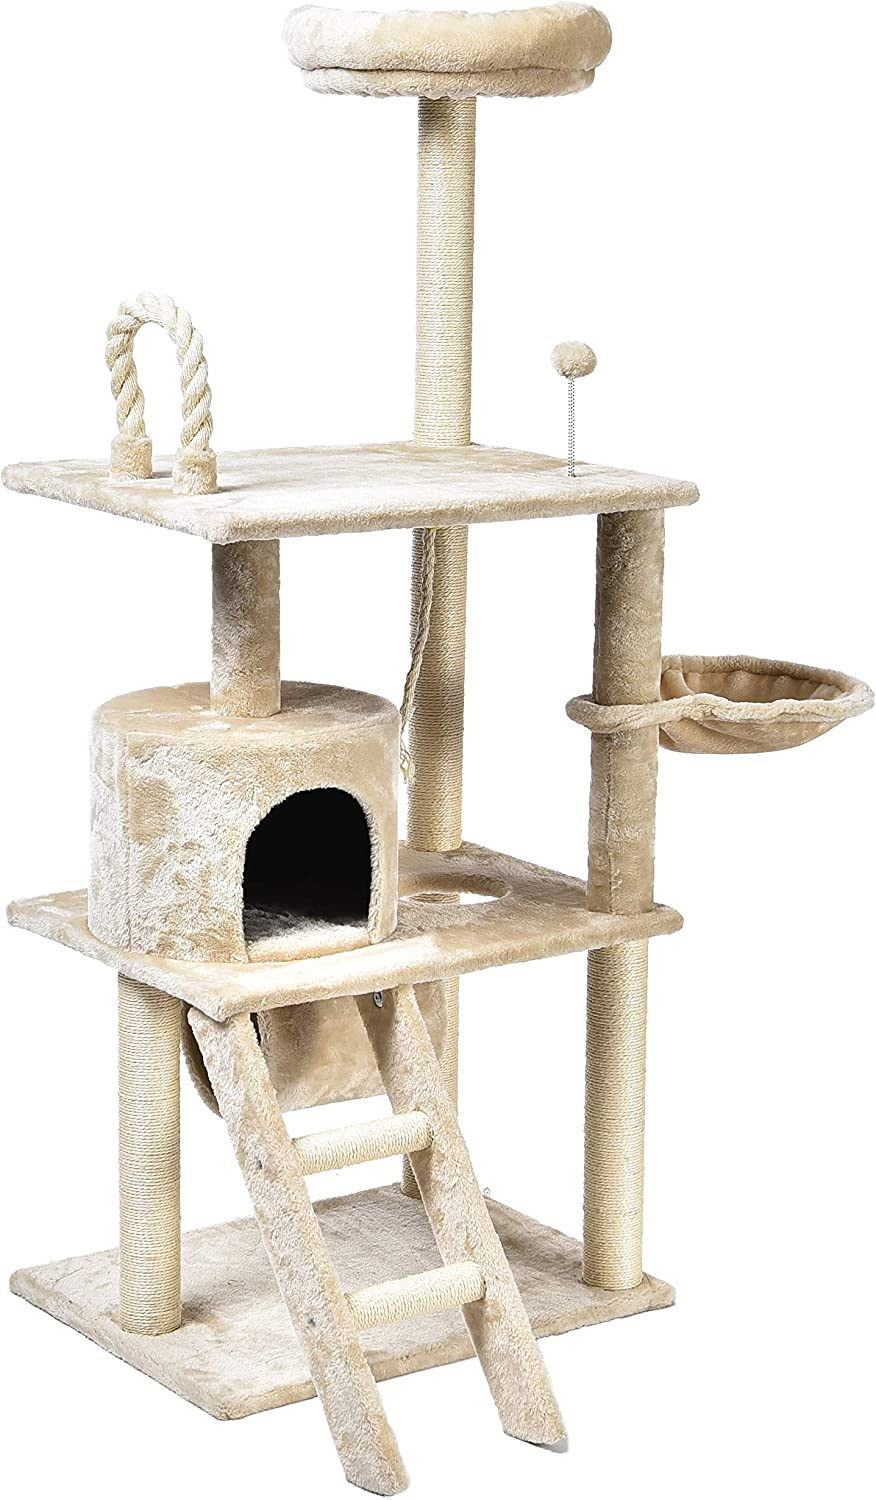 Basics Multi-Level Cat Tree Condo With Tunnel And Platform - 24 x 60 x 19 Inches, Beige : Pet Supplies